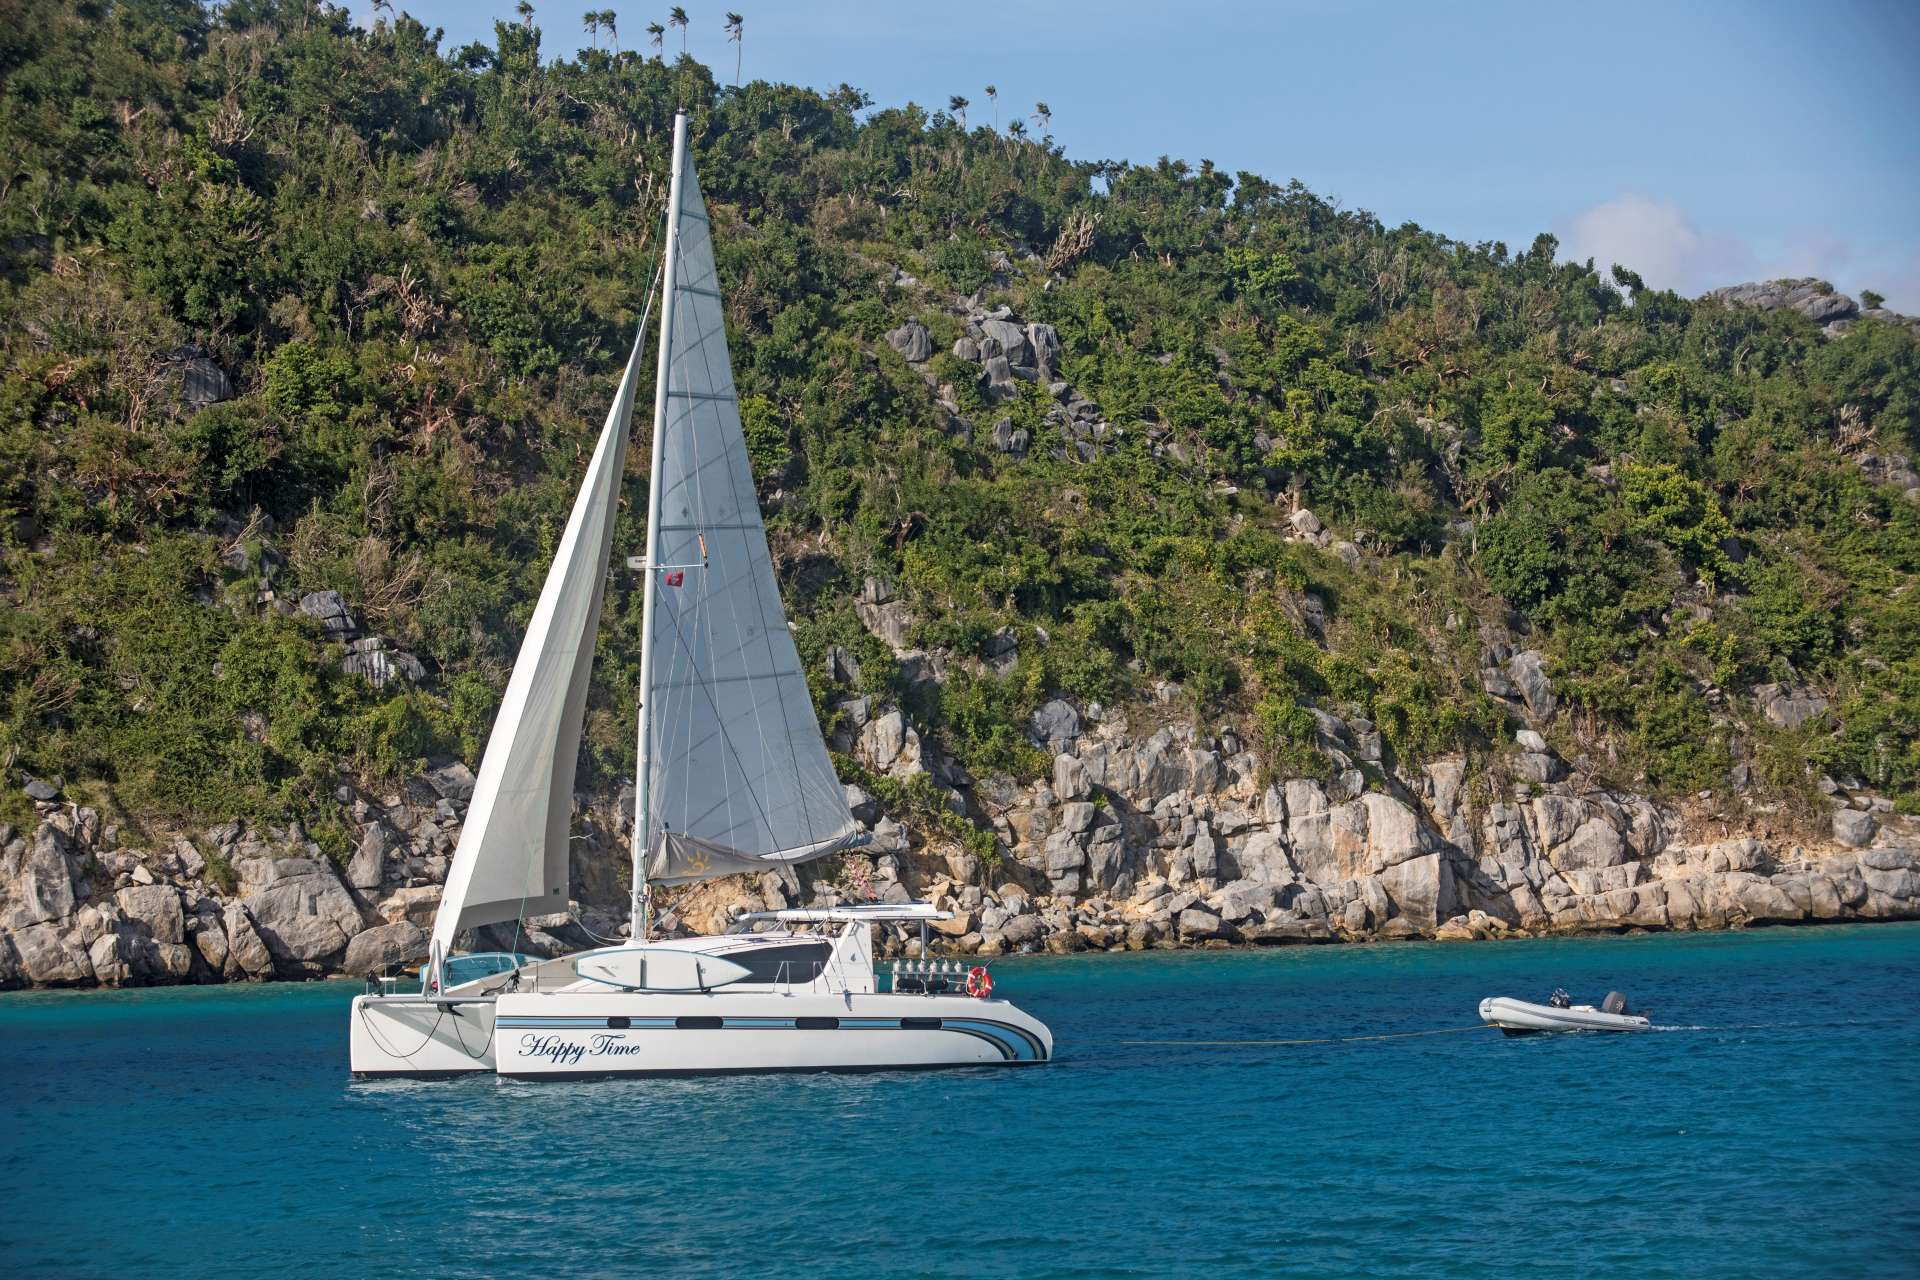 Charter with HAPPY TIME on compassyachtcharters.com